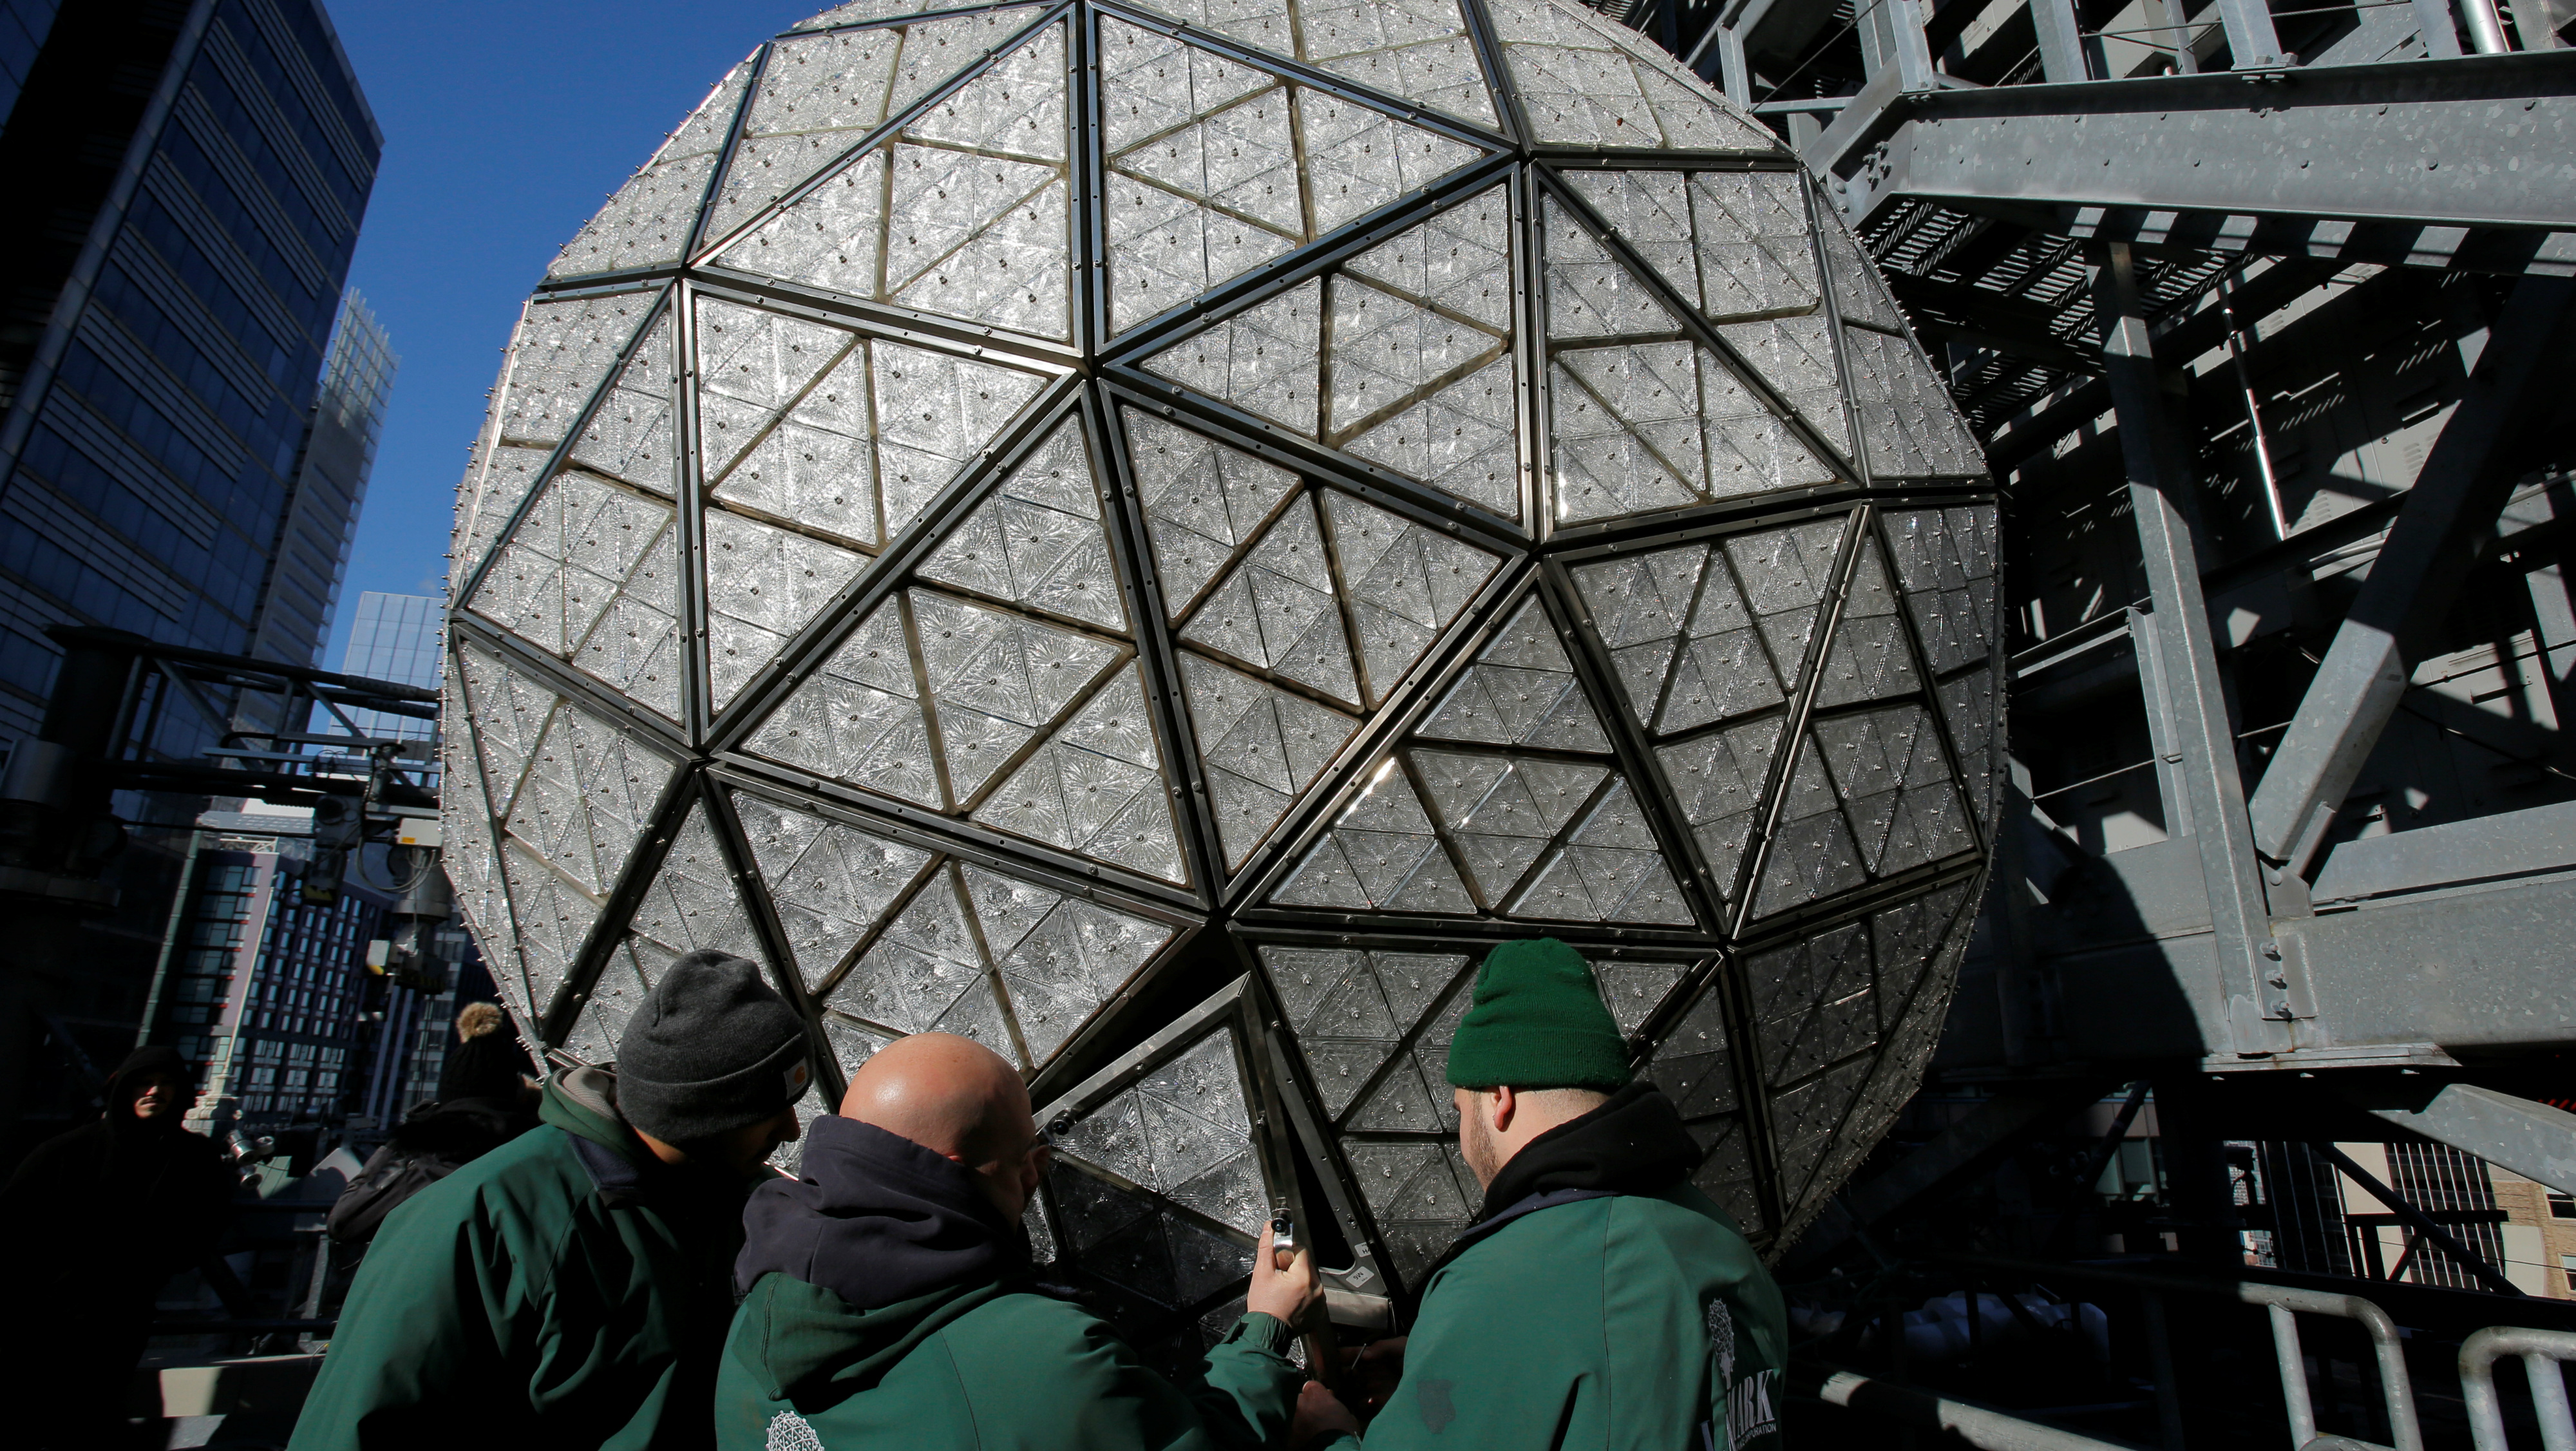 The New Year's eve ball.